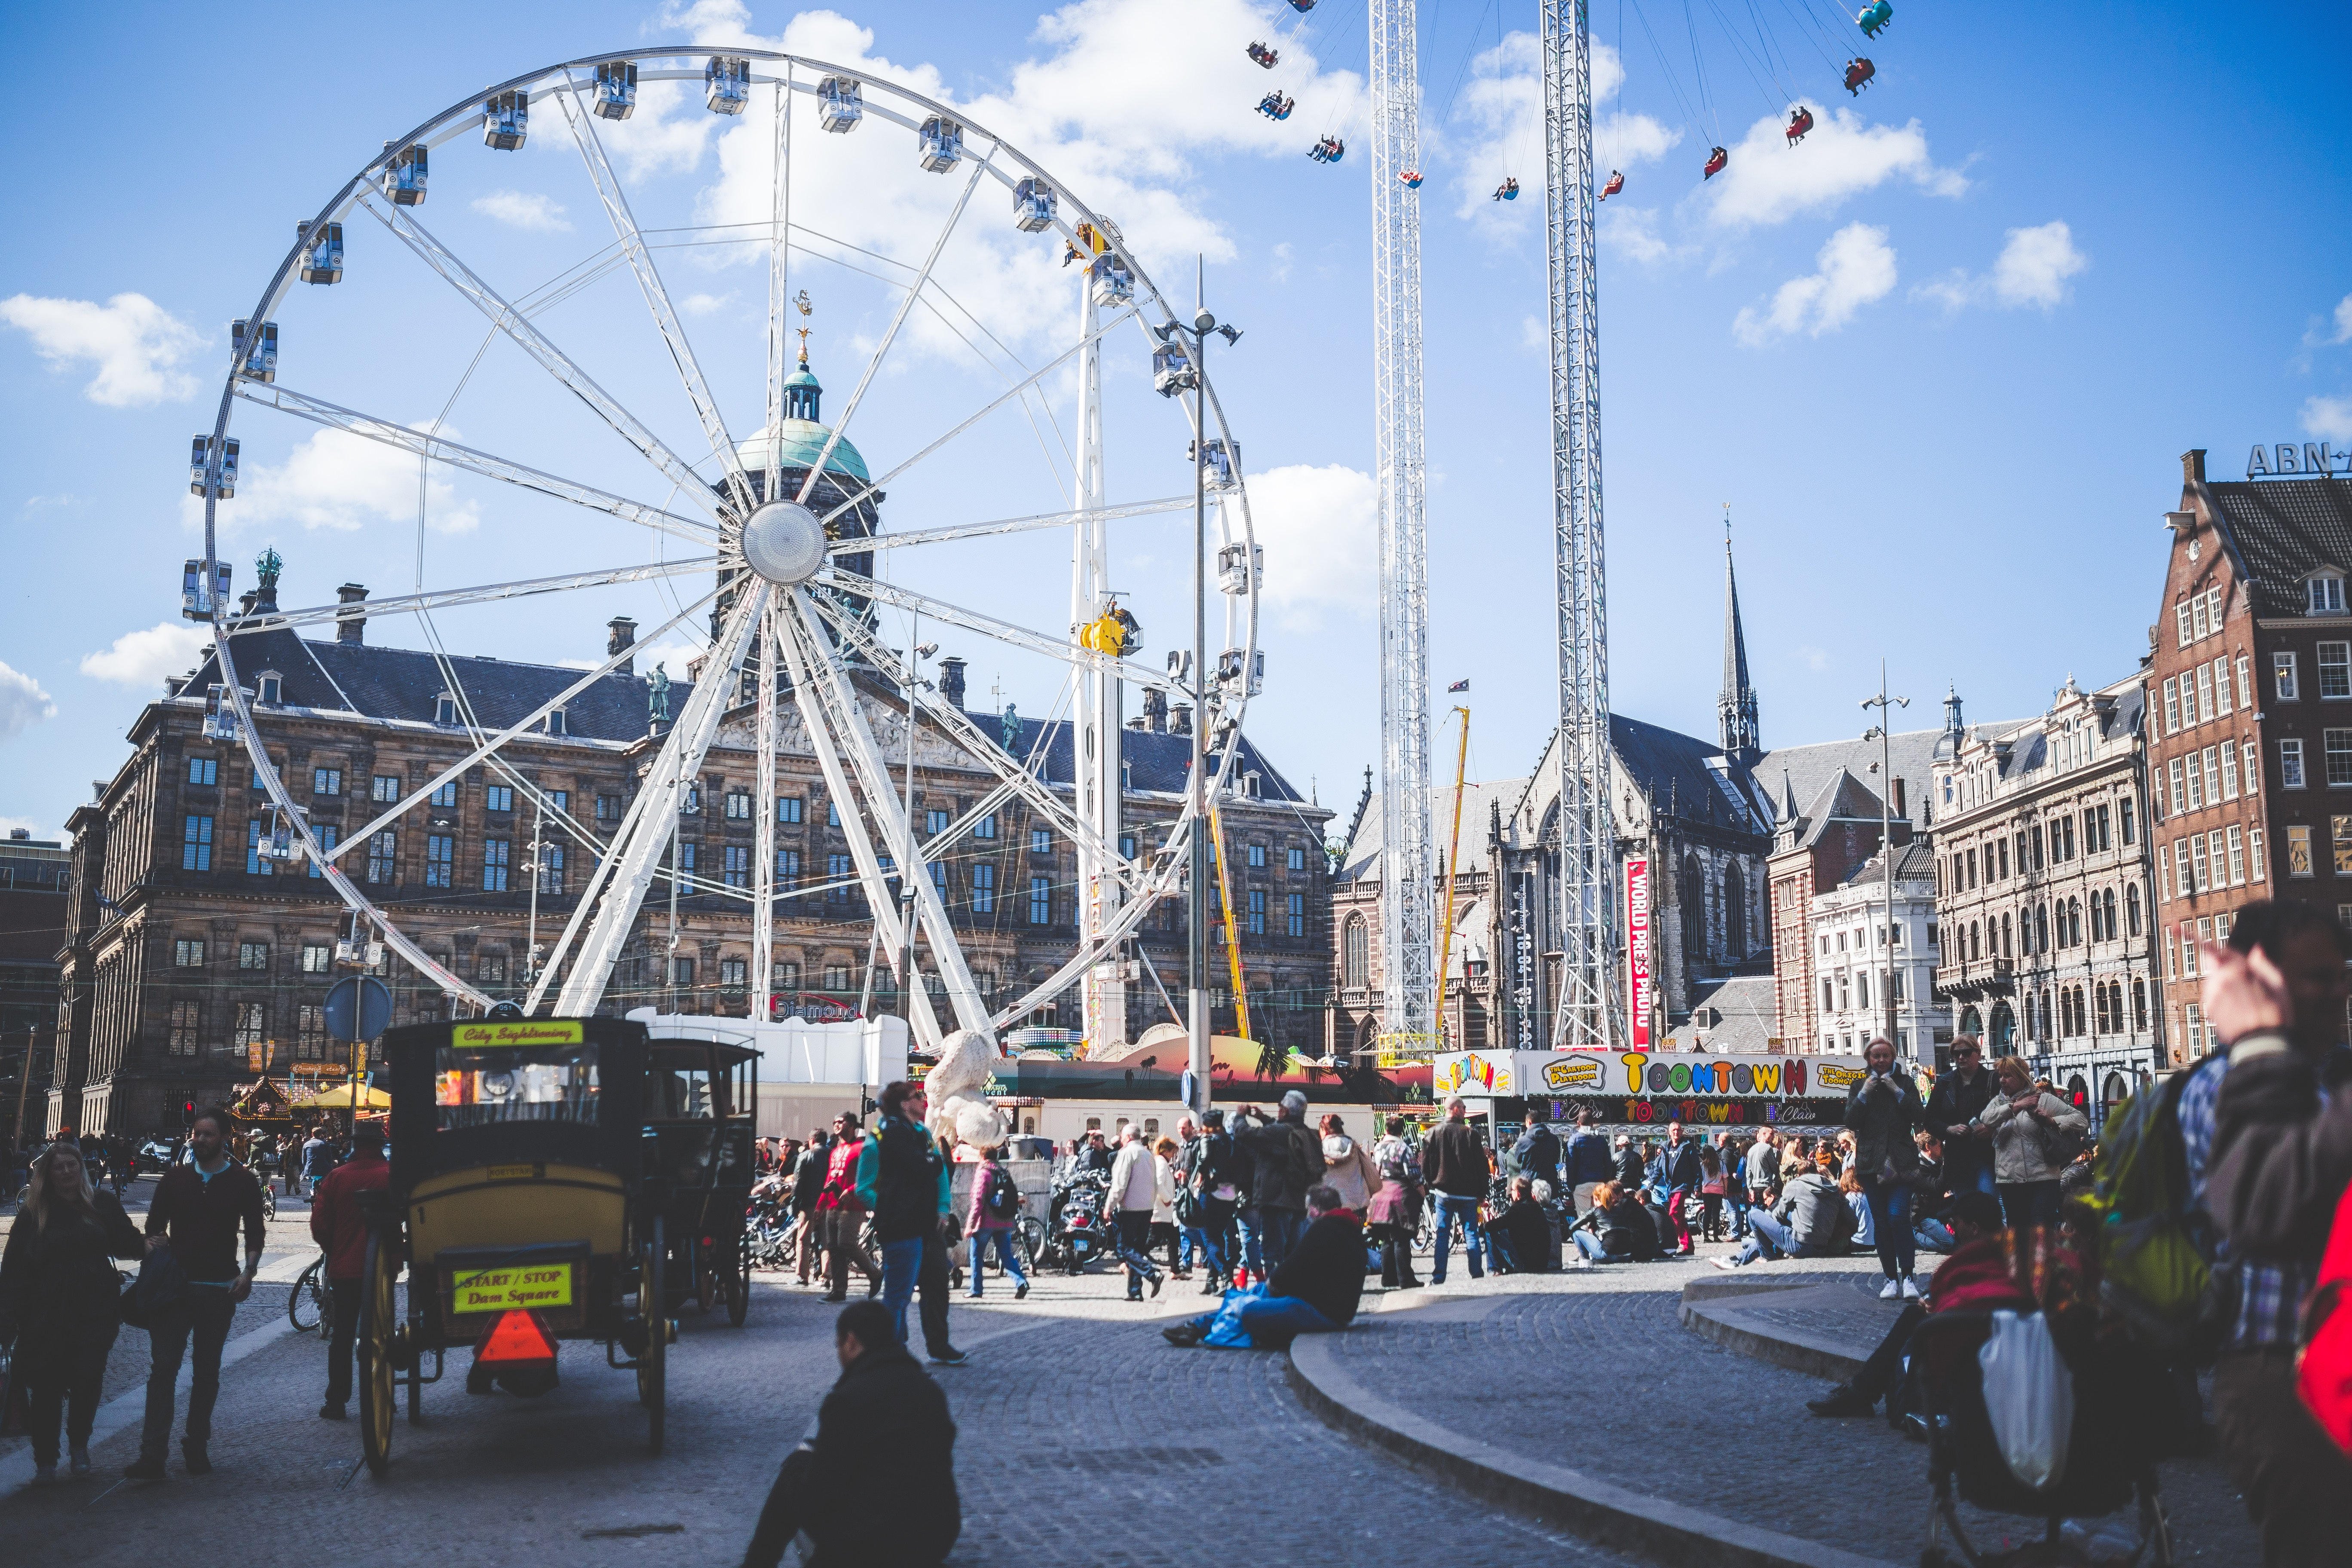 Ferris wheel beside brown buildings and people under blue cloudy sky at daytime photo